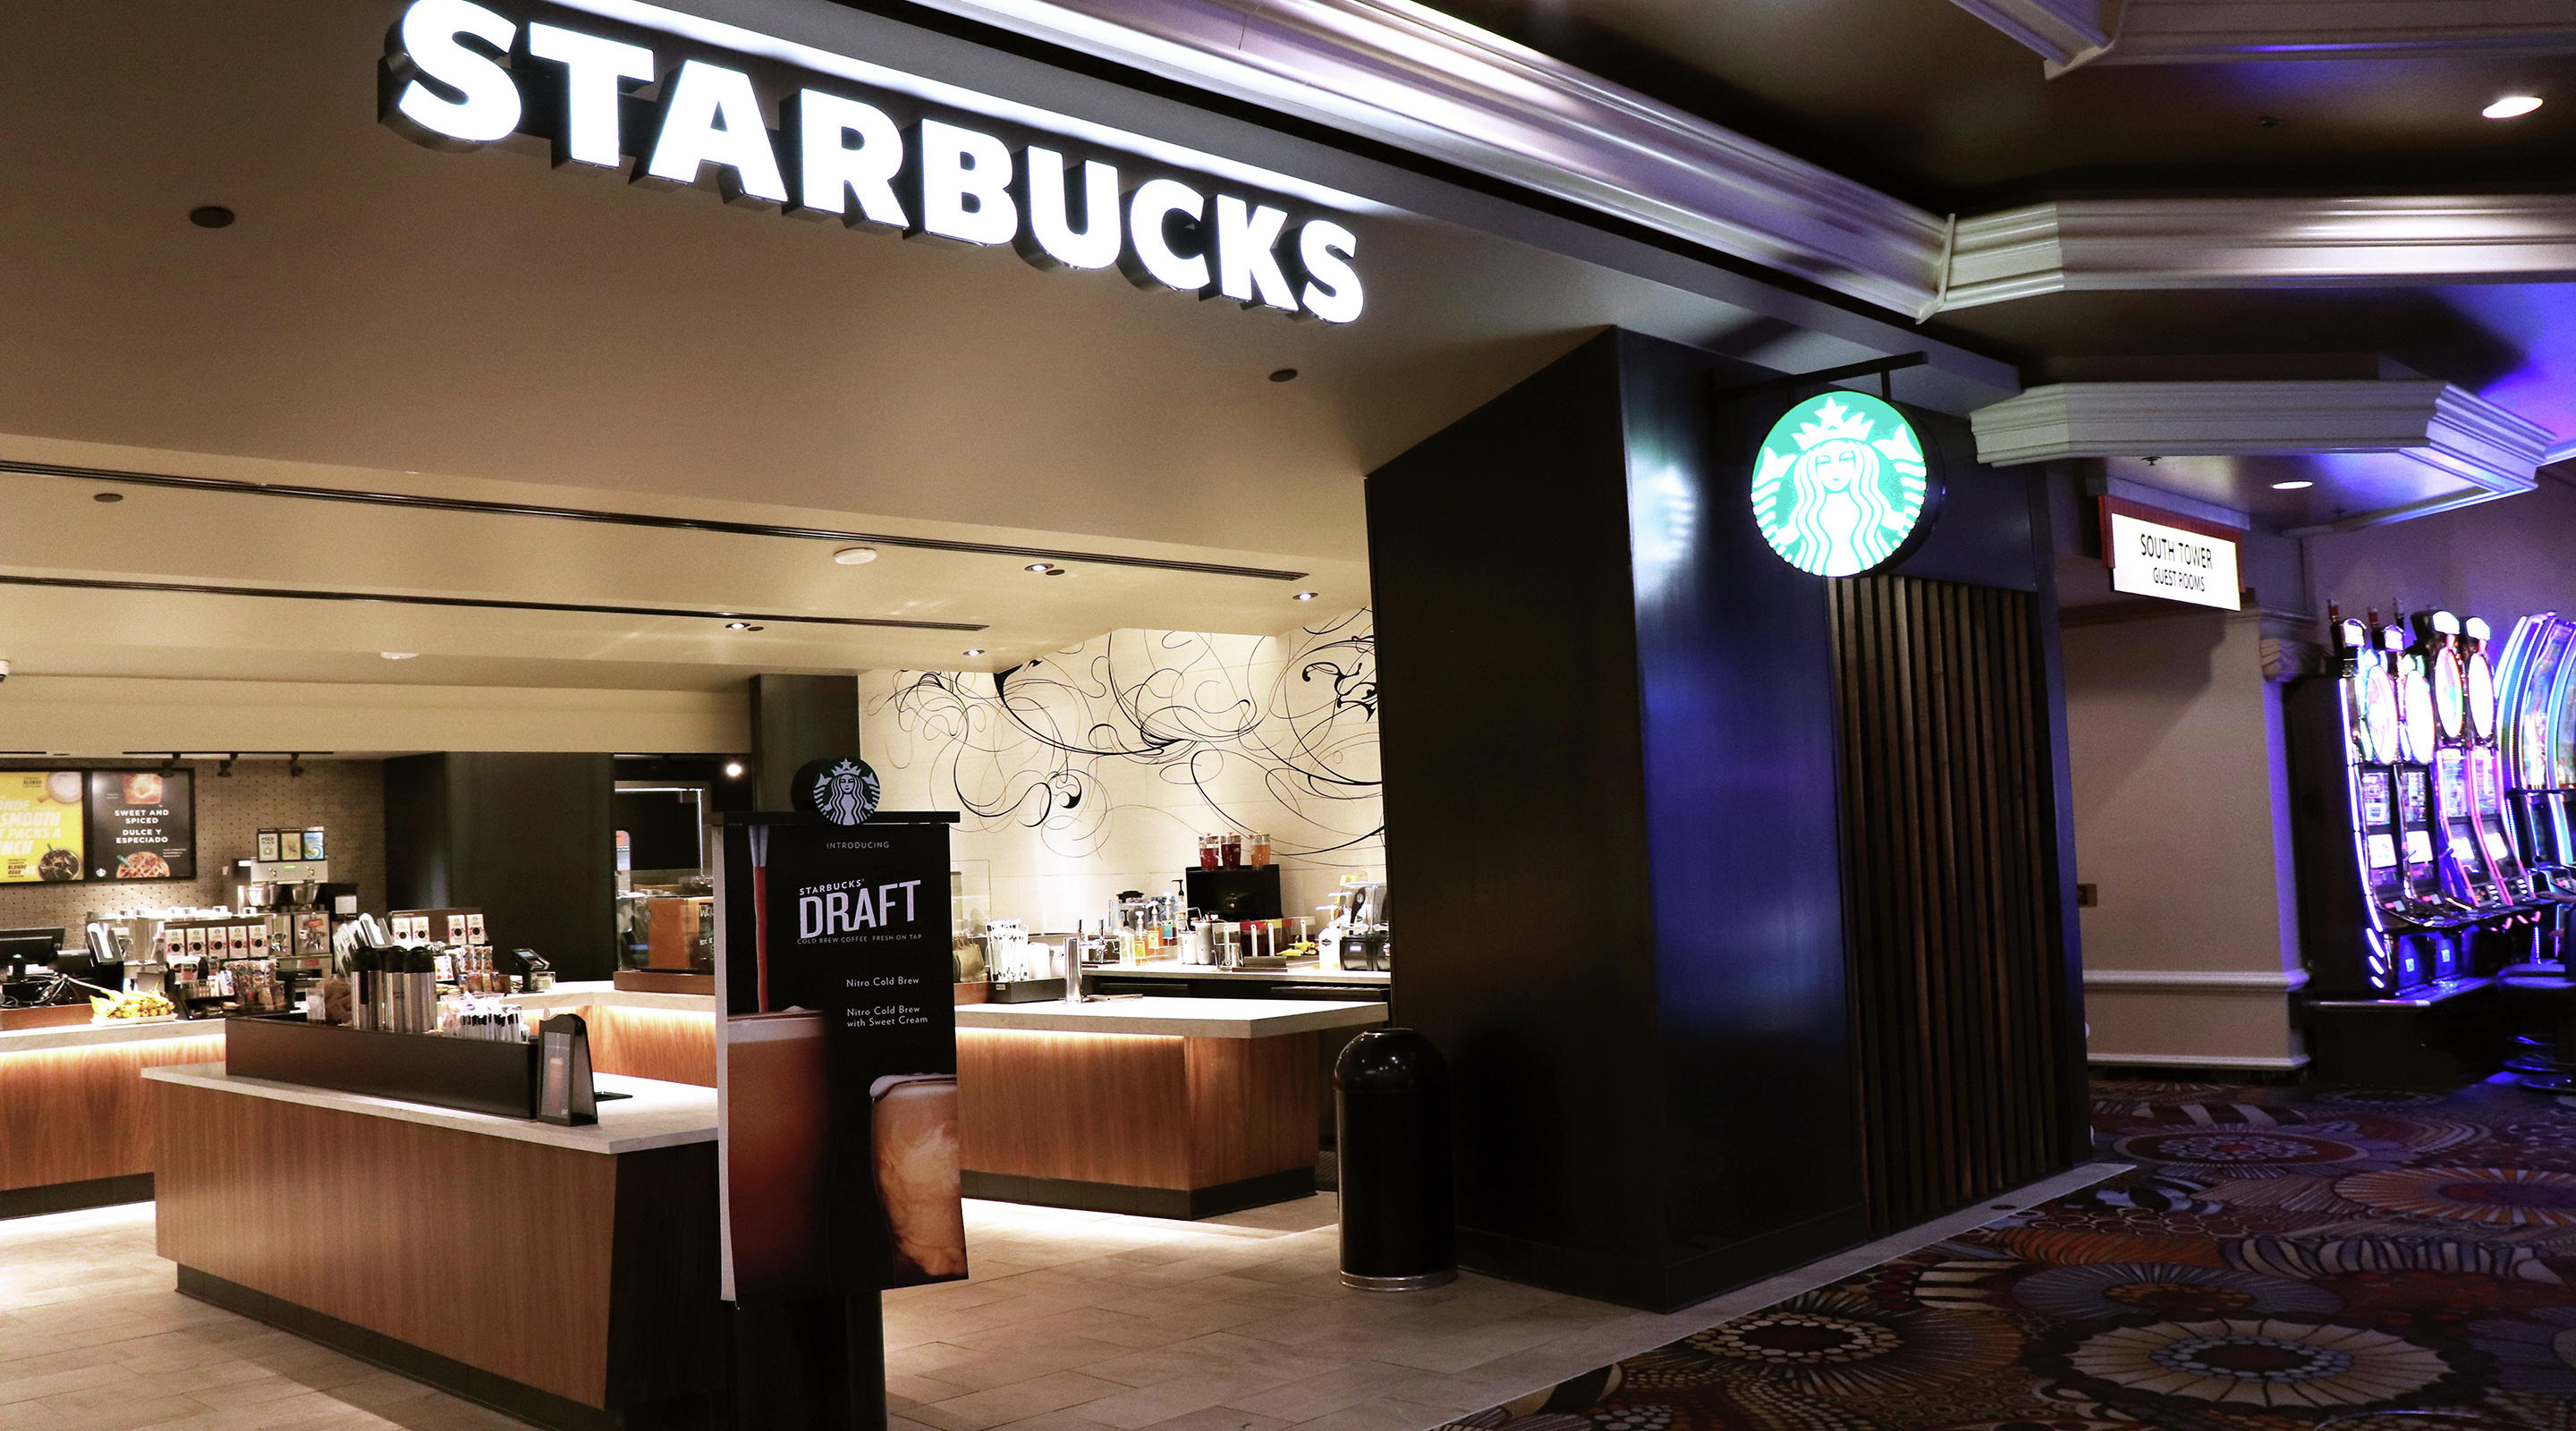 An architectural image of Starbucks at the MGM Grand lobby.